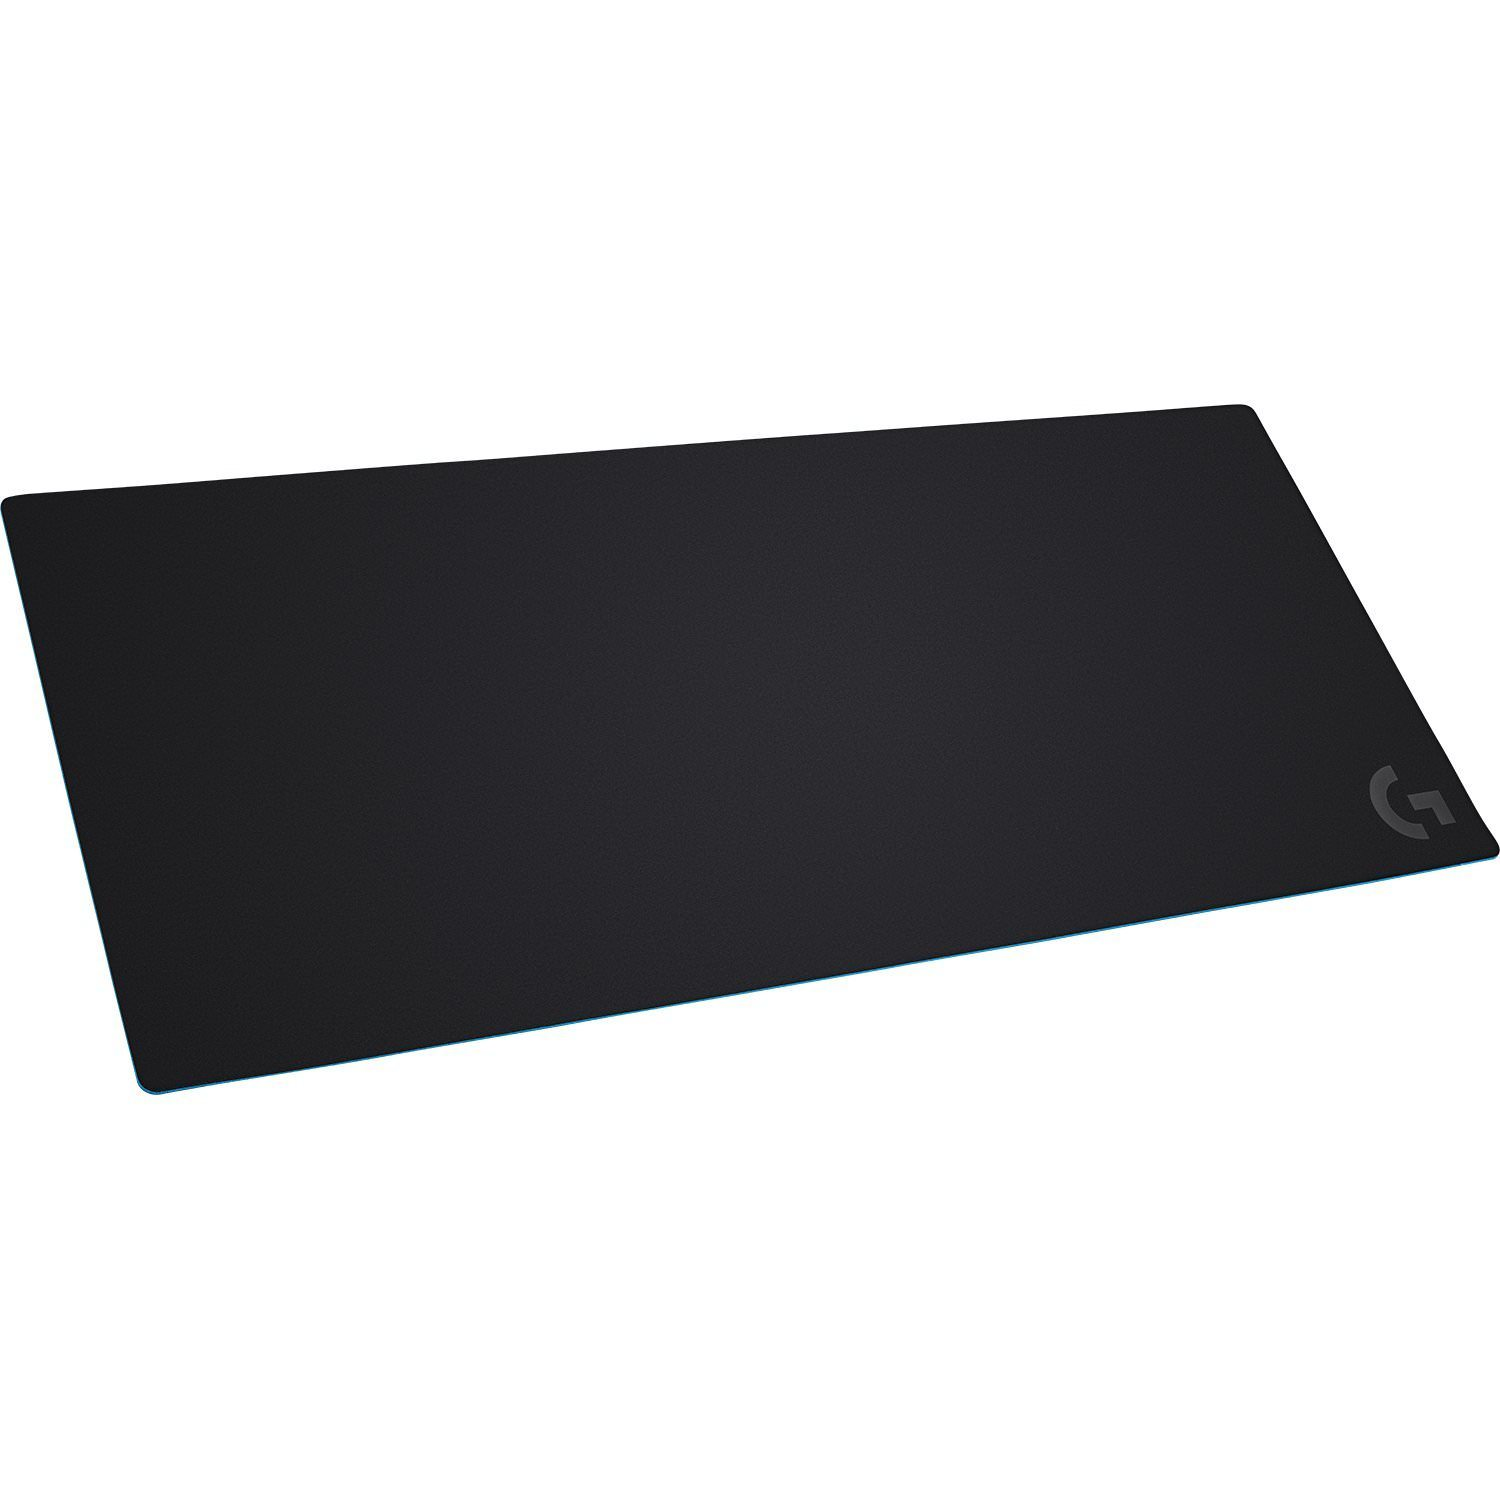 Logitech G840 XL GAMING MOUSE PAD by Logitech